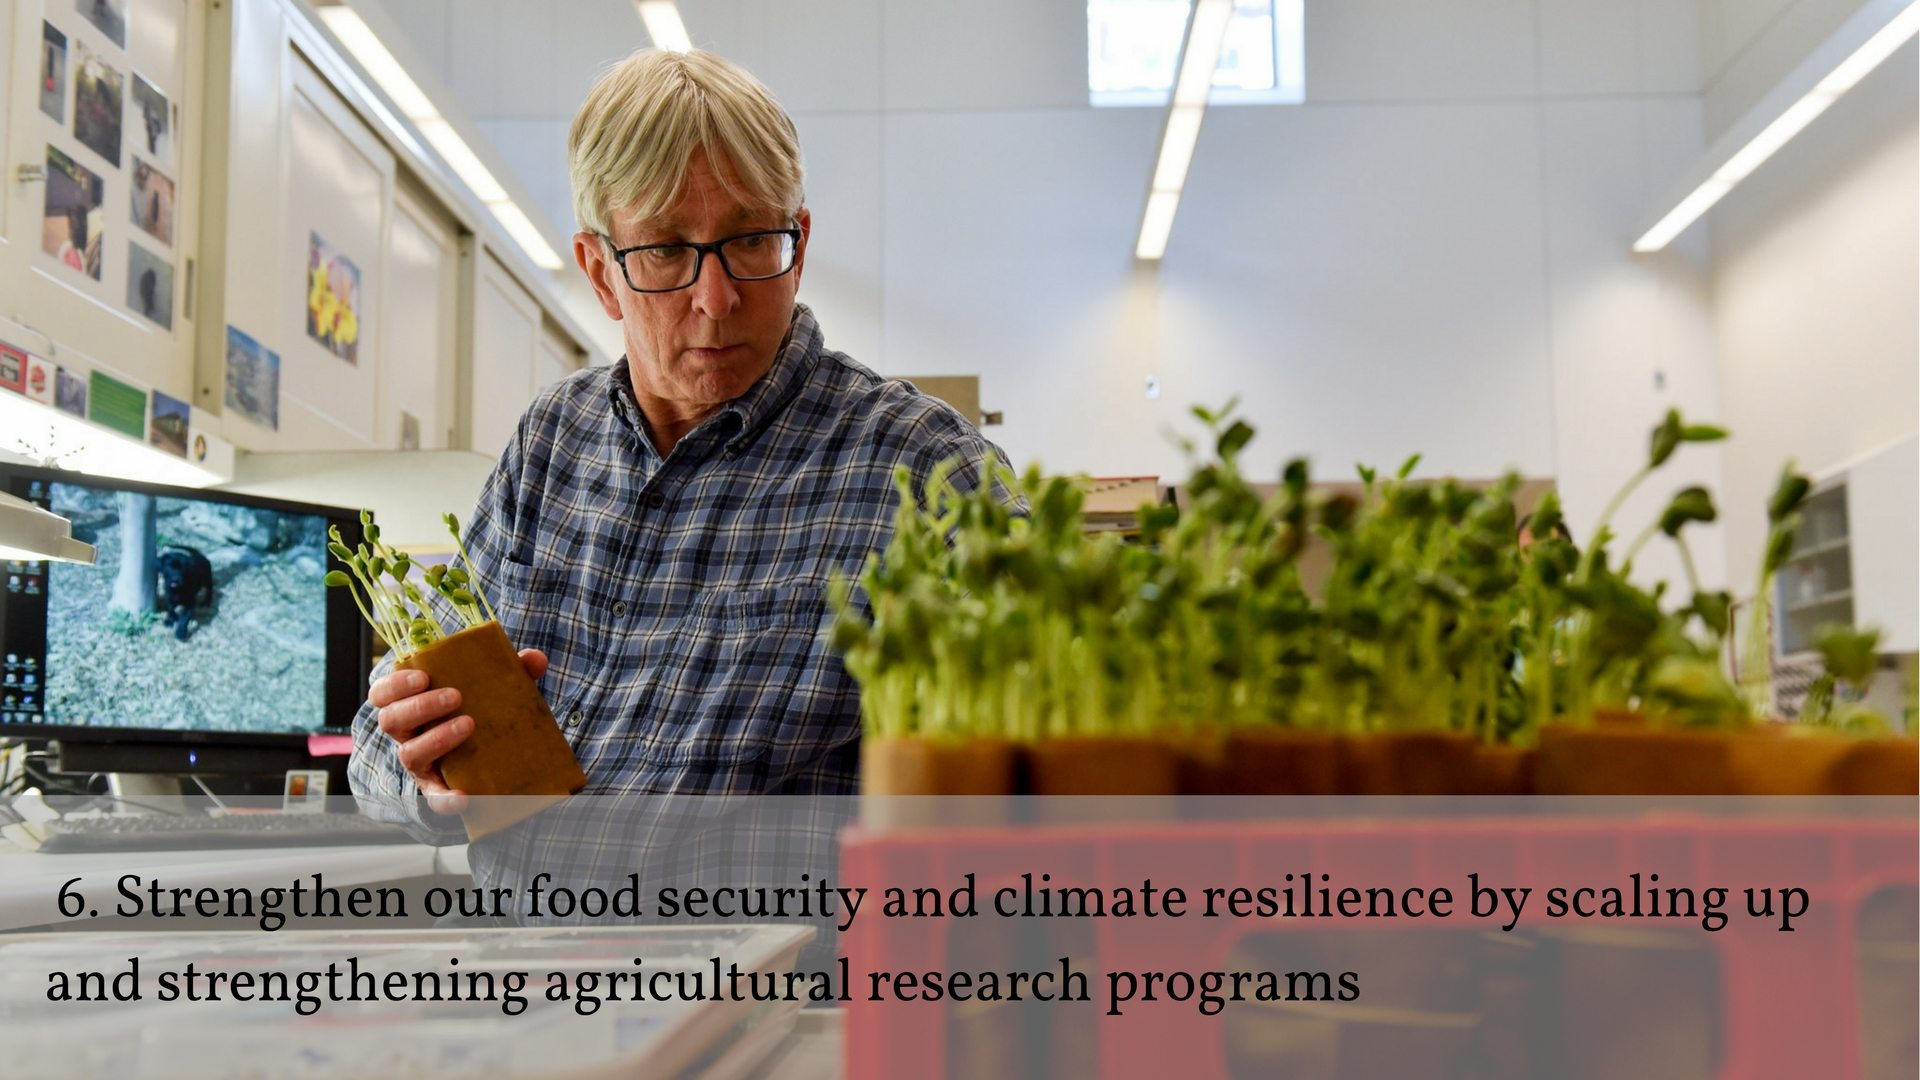 6.Strengthen our food security and climate resilience by scaling up and strengthening agricultural research programs